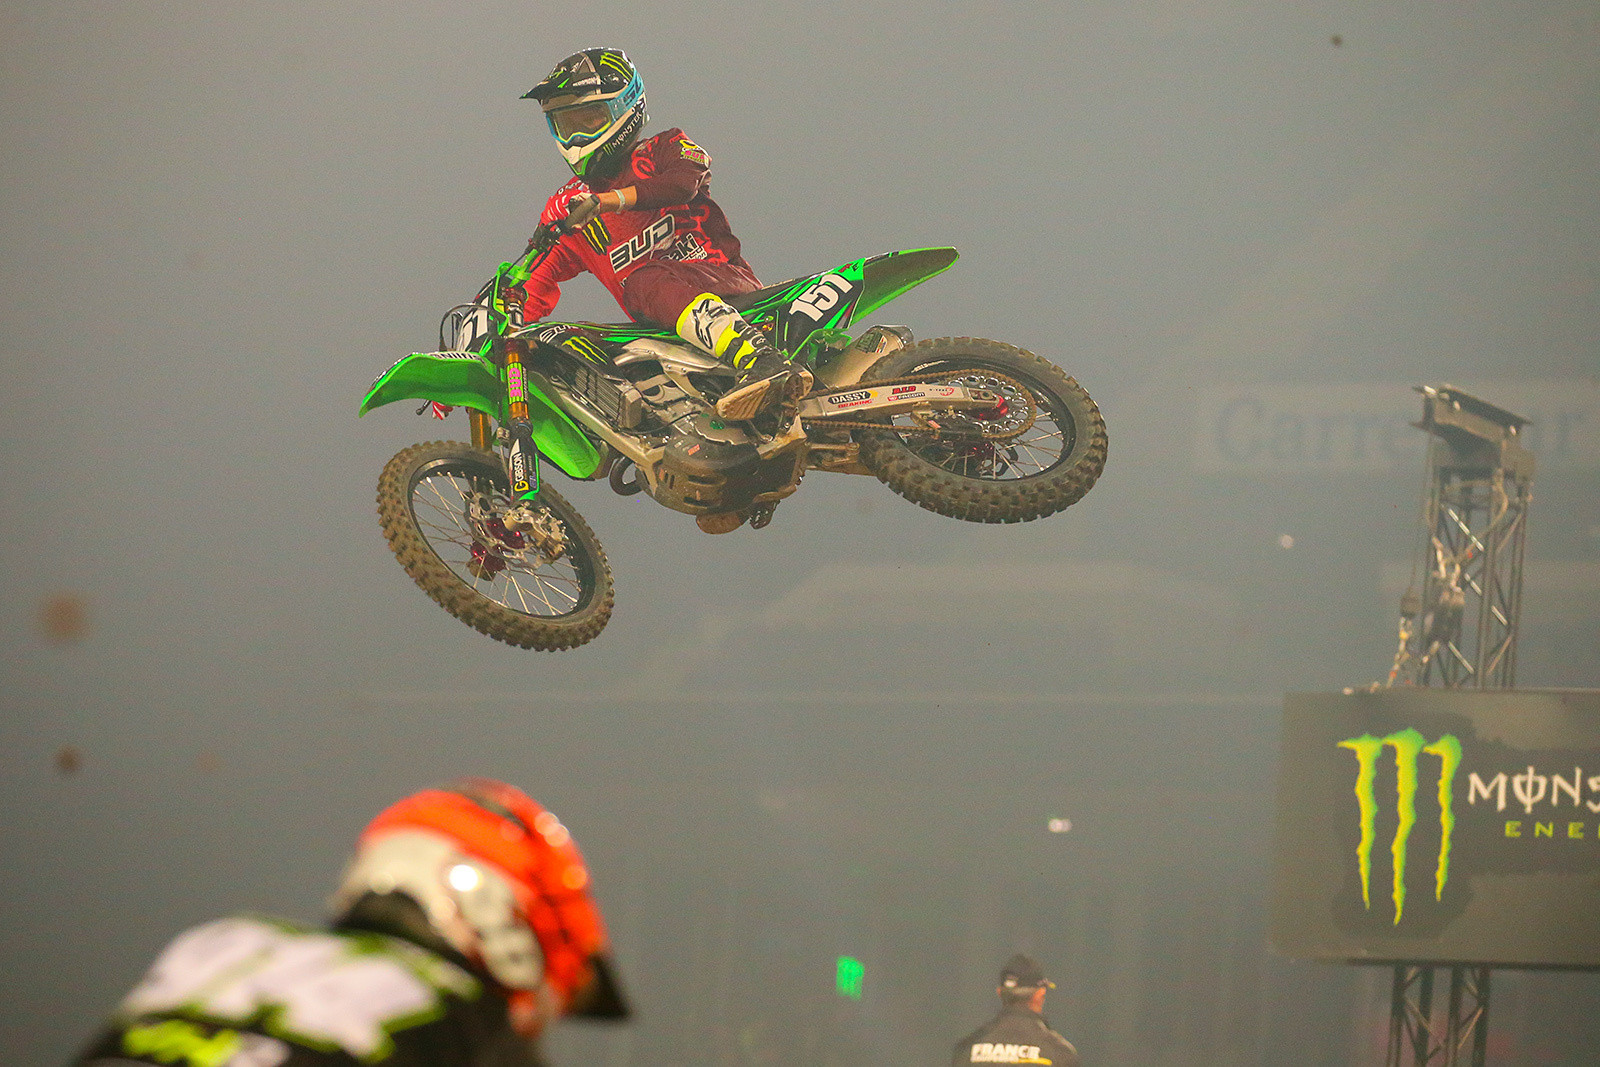 Ryan Surratt - Photo Gallery: Paris-Lille Supercross, Day 2 - Motocross Pictures - Vital MX